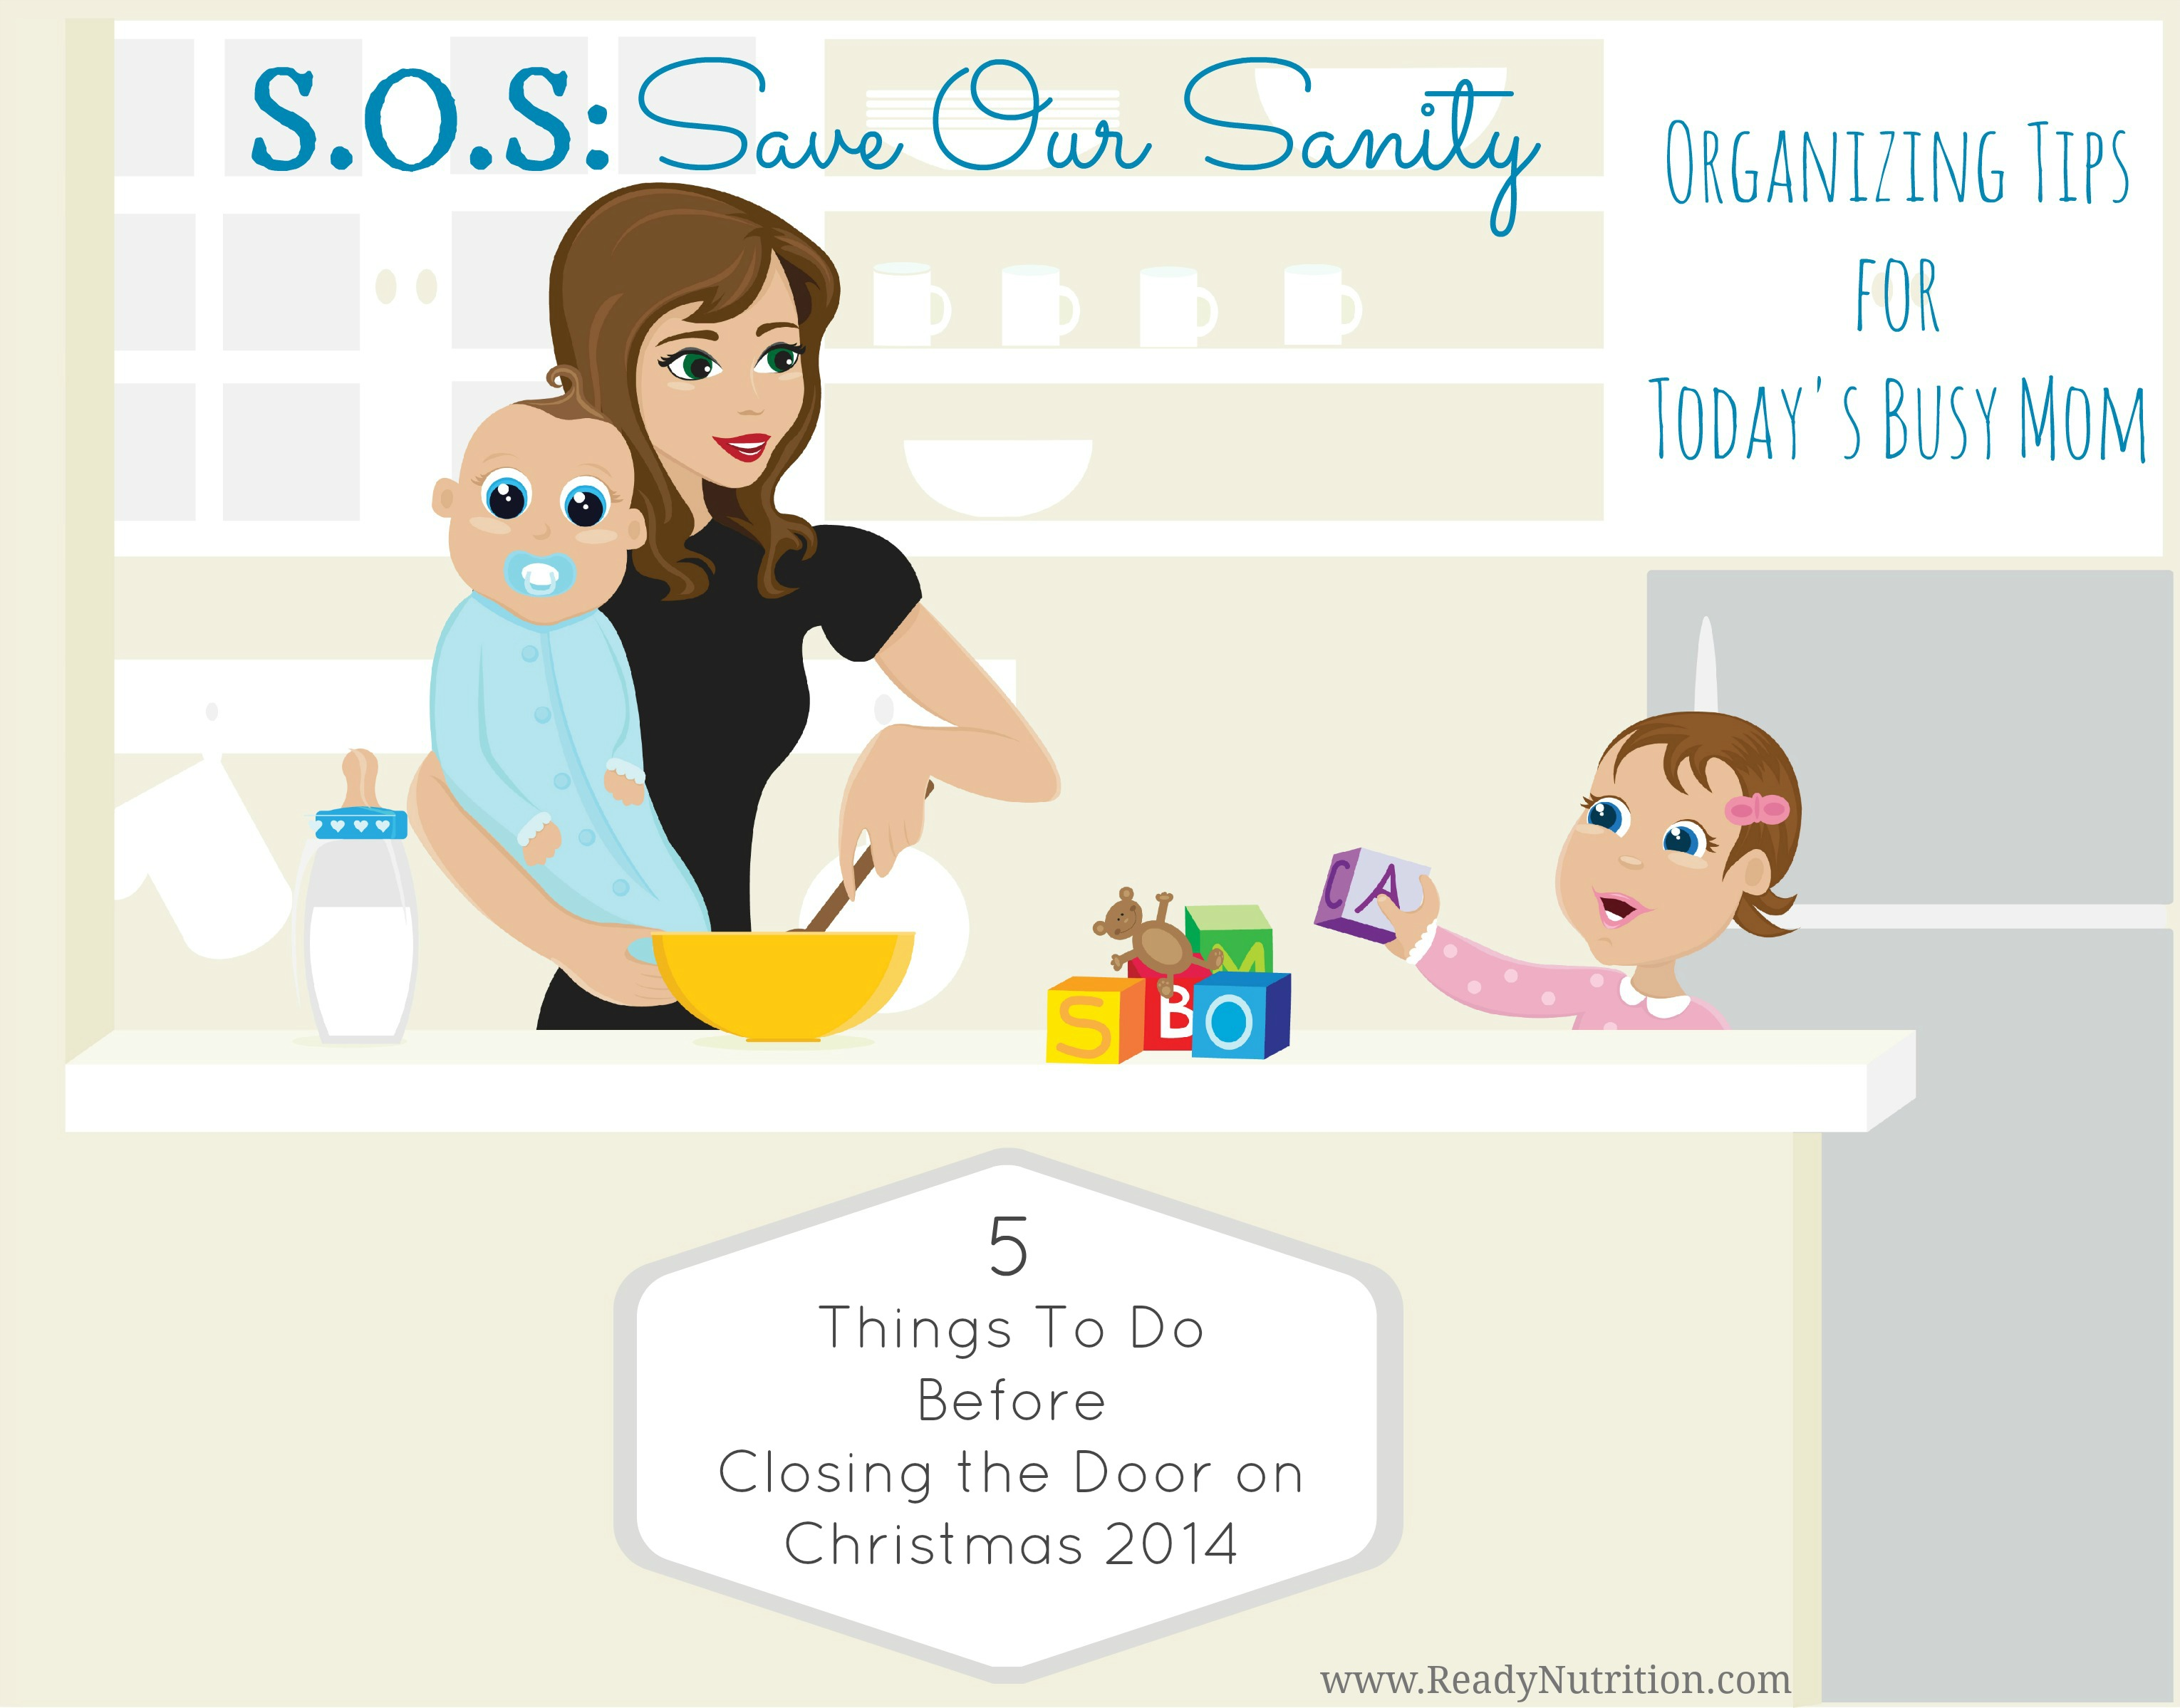 S.O.S. Save Our Sanity: Five Things To Do Before Closing the Door on Christmas 2014